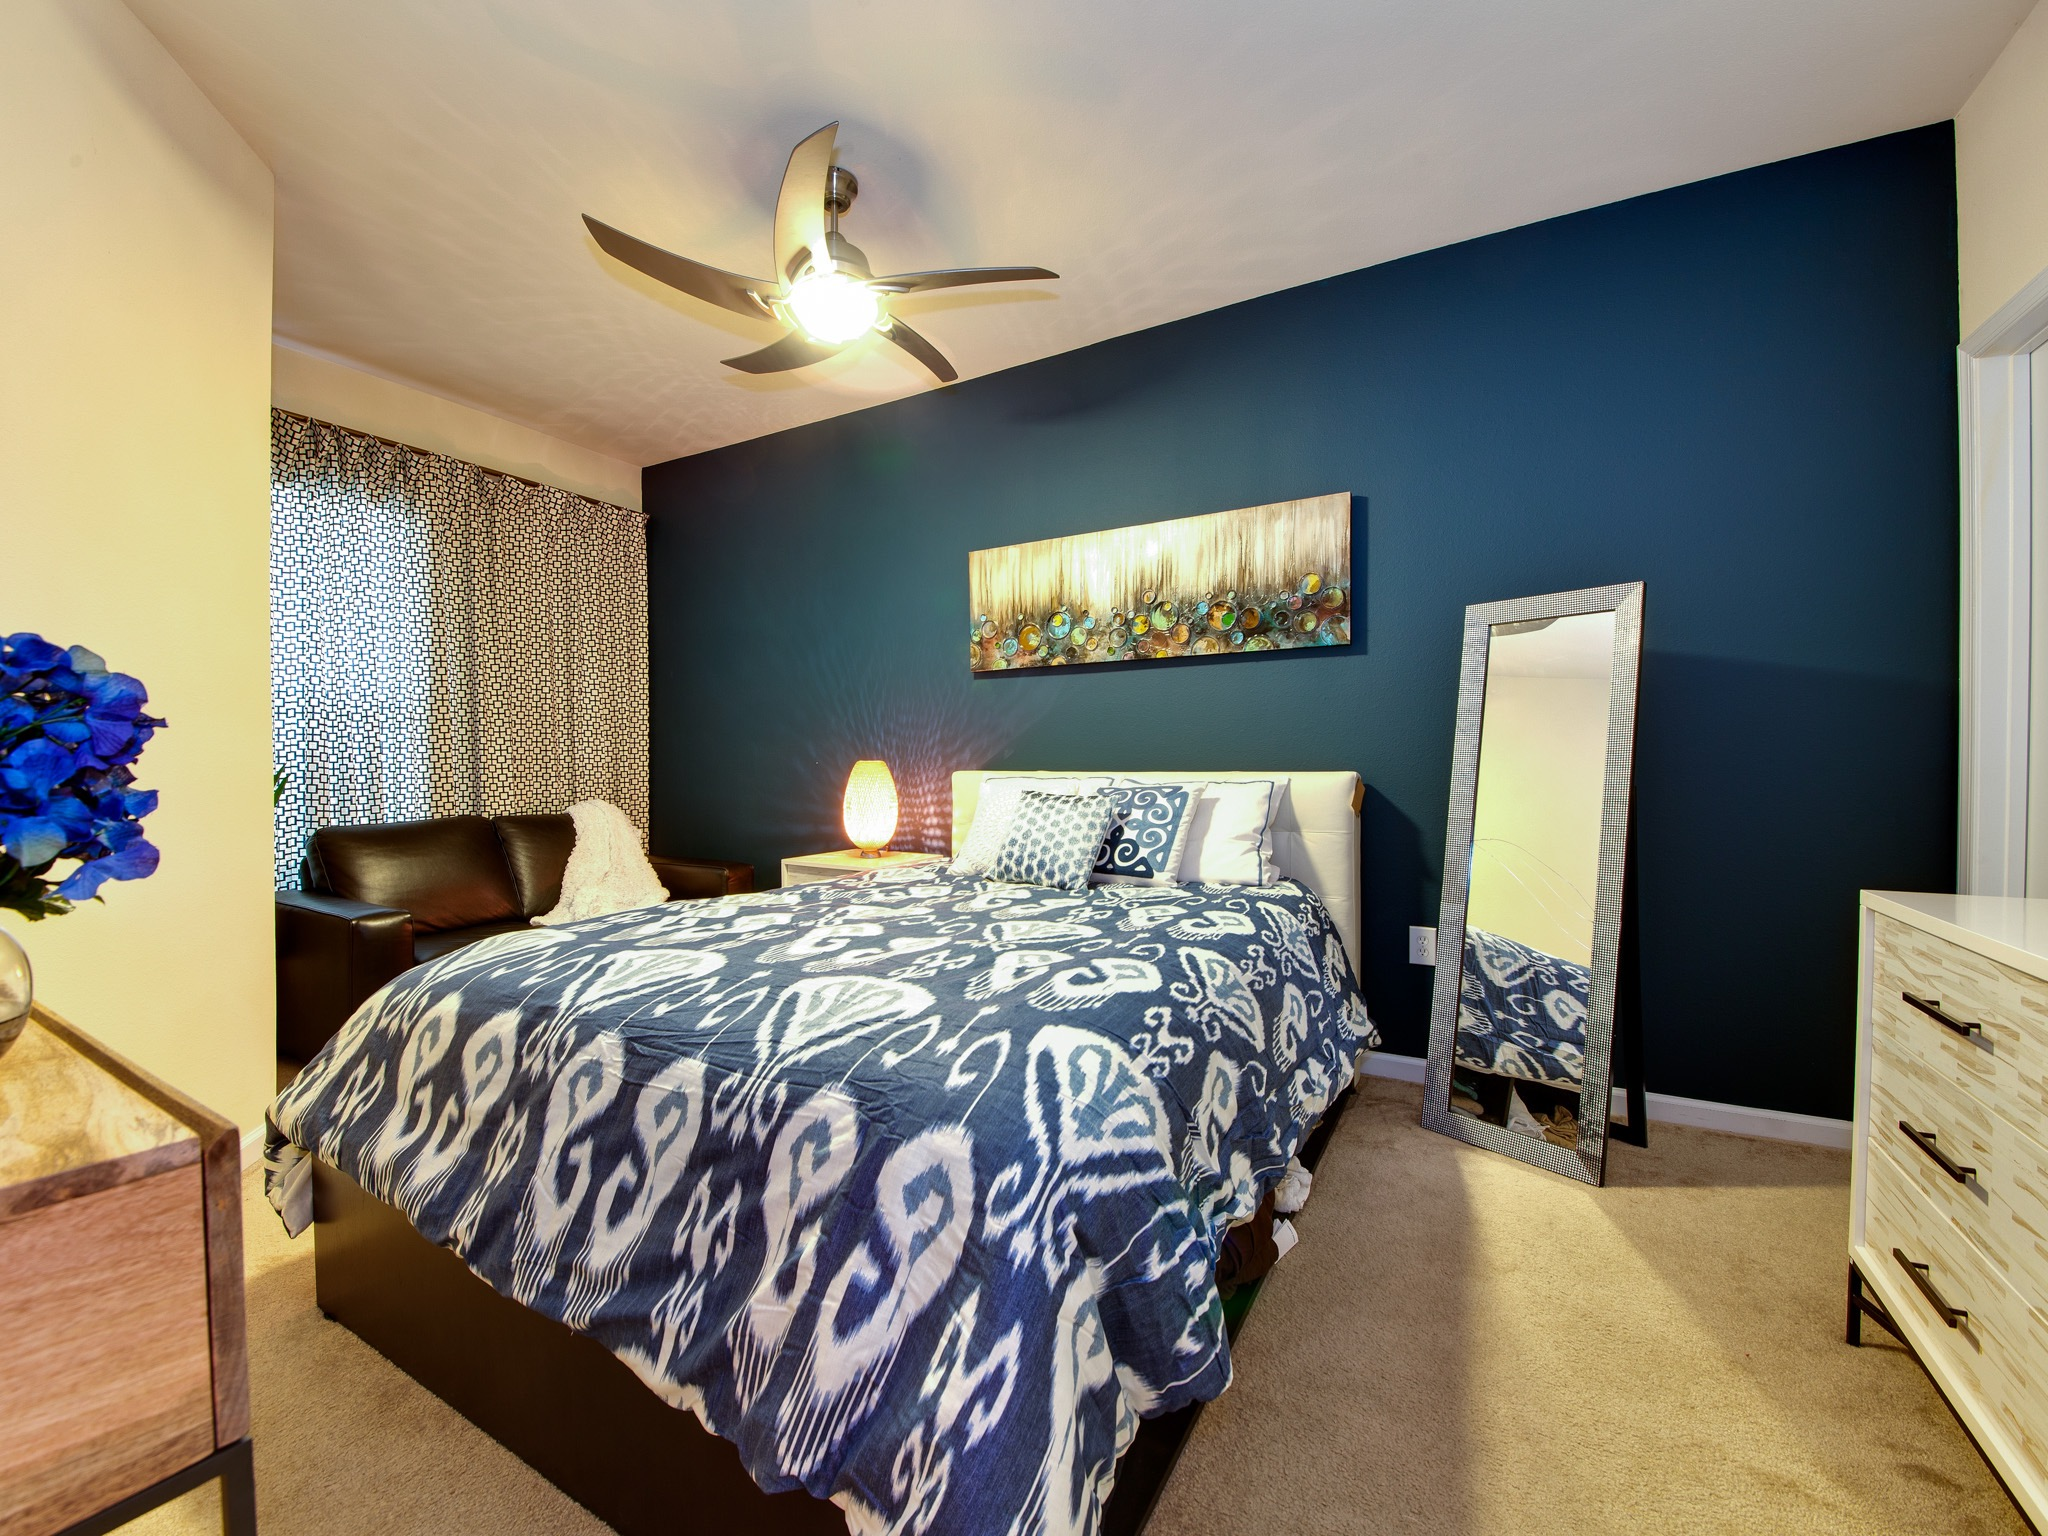 blue bedroom walls 20 lovely bedroom paint and color ideas 16569 bedroom ideas 10881